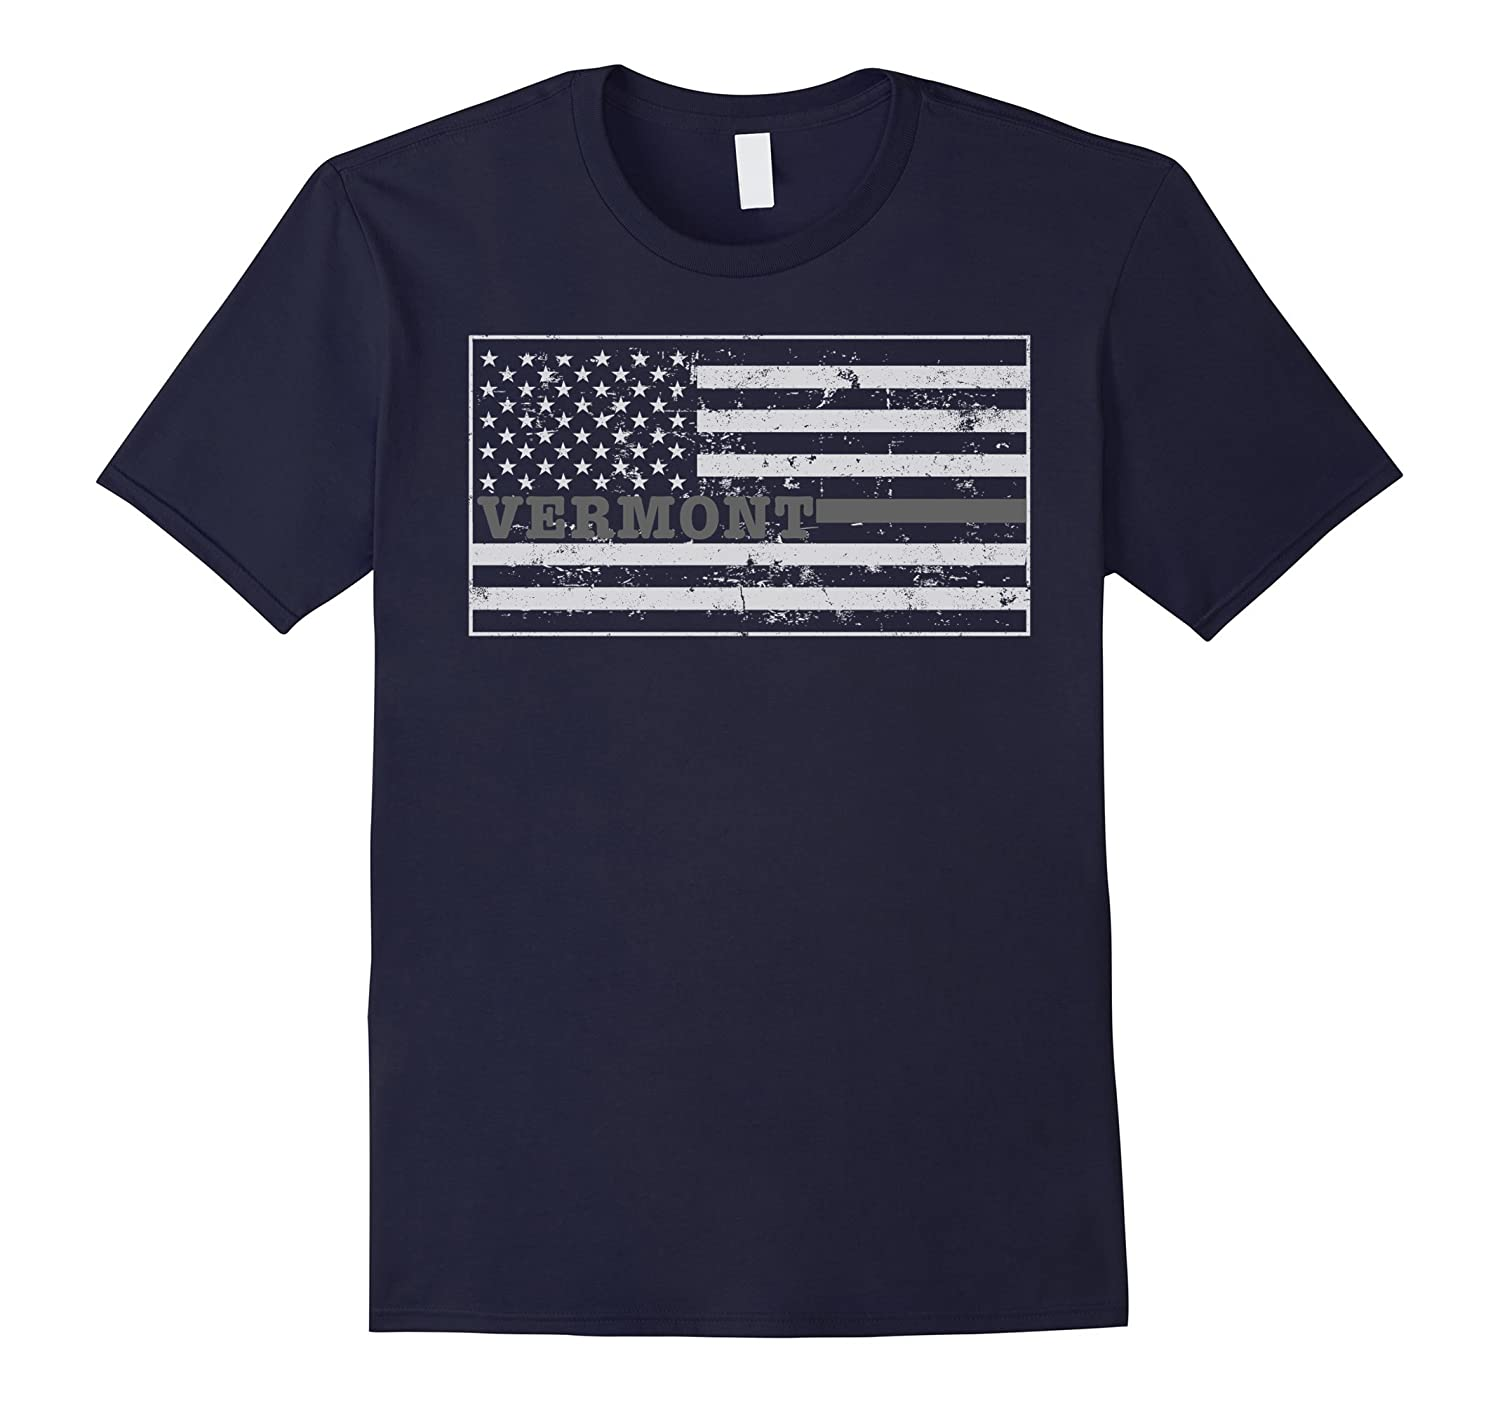 Vermont Shirt Correction Officer Shirt Prison Guard Shirt-TH